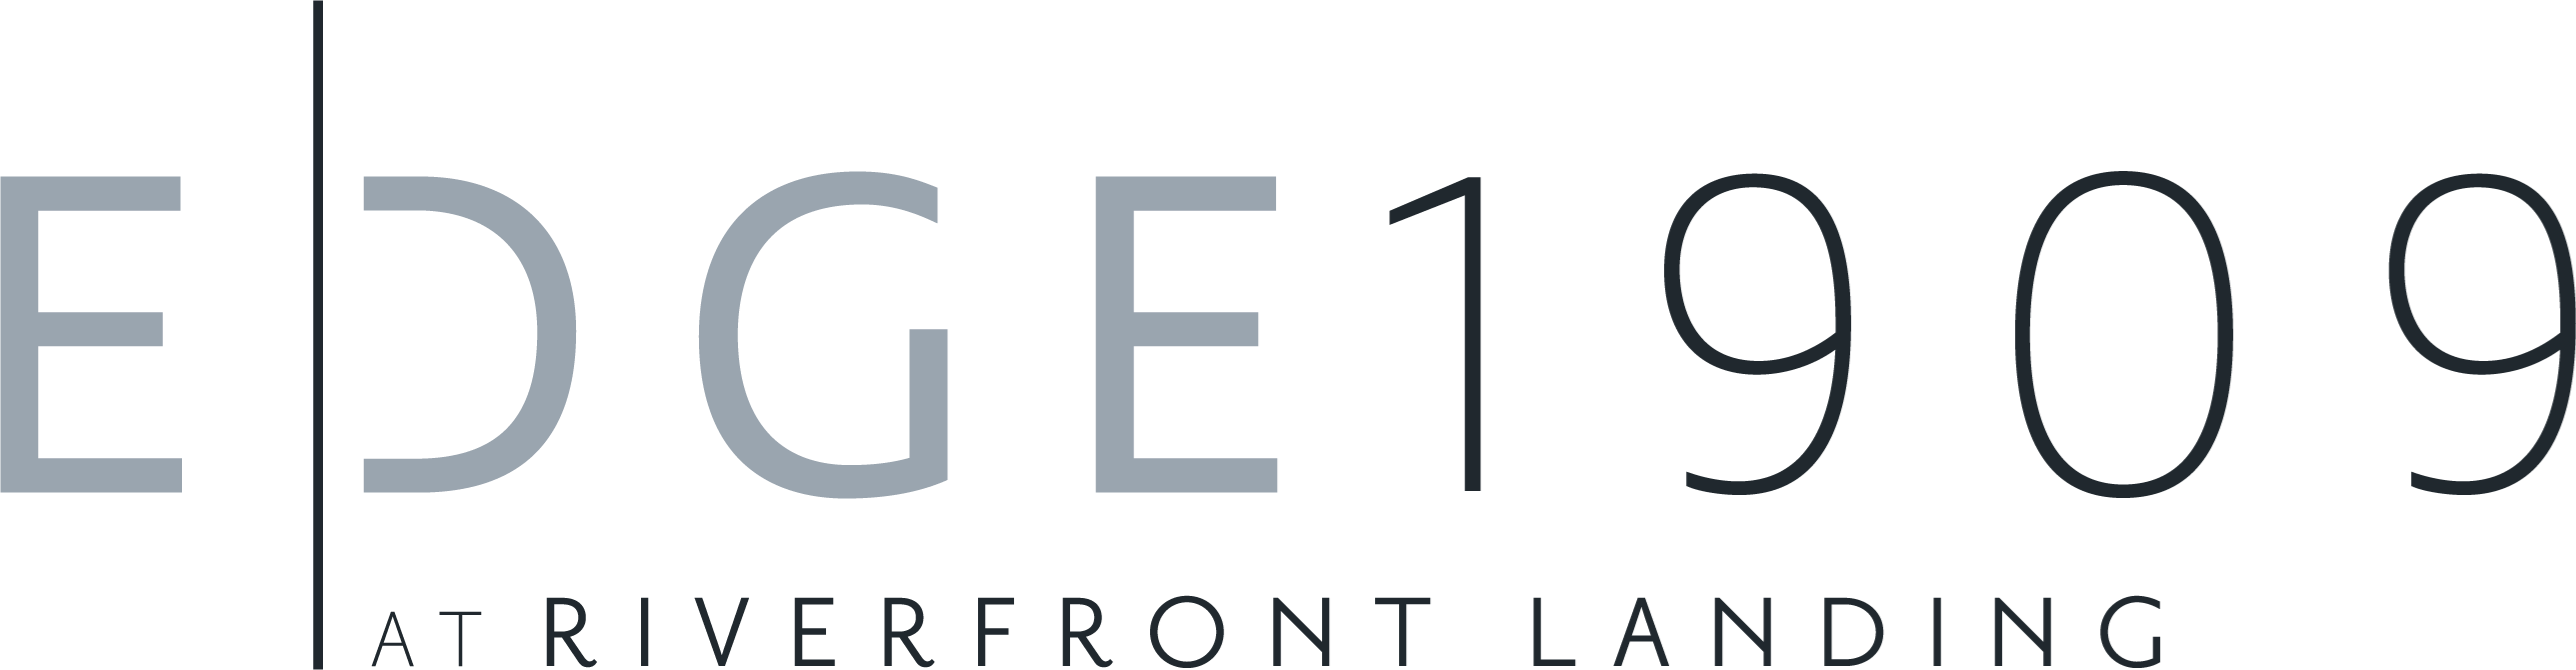 Pittsburgh Property Logo 13